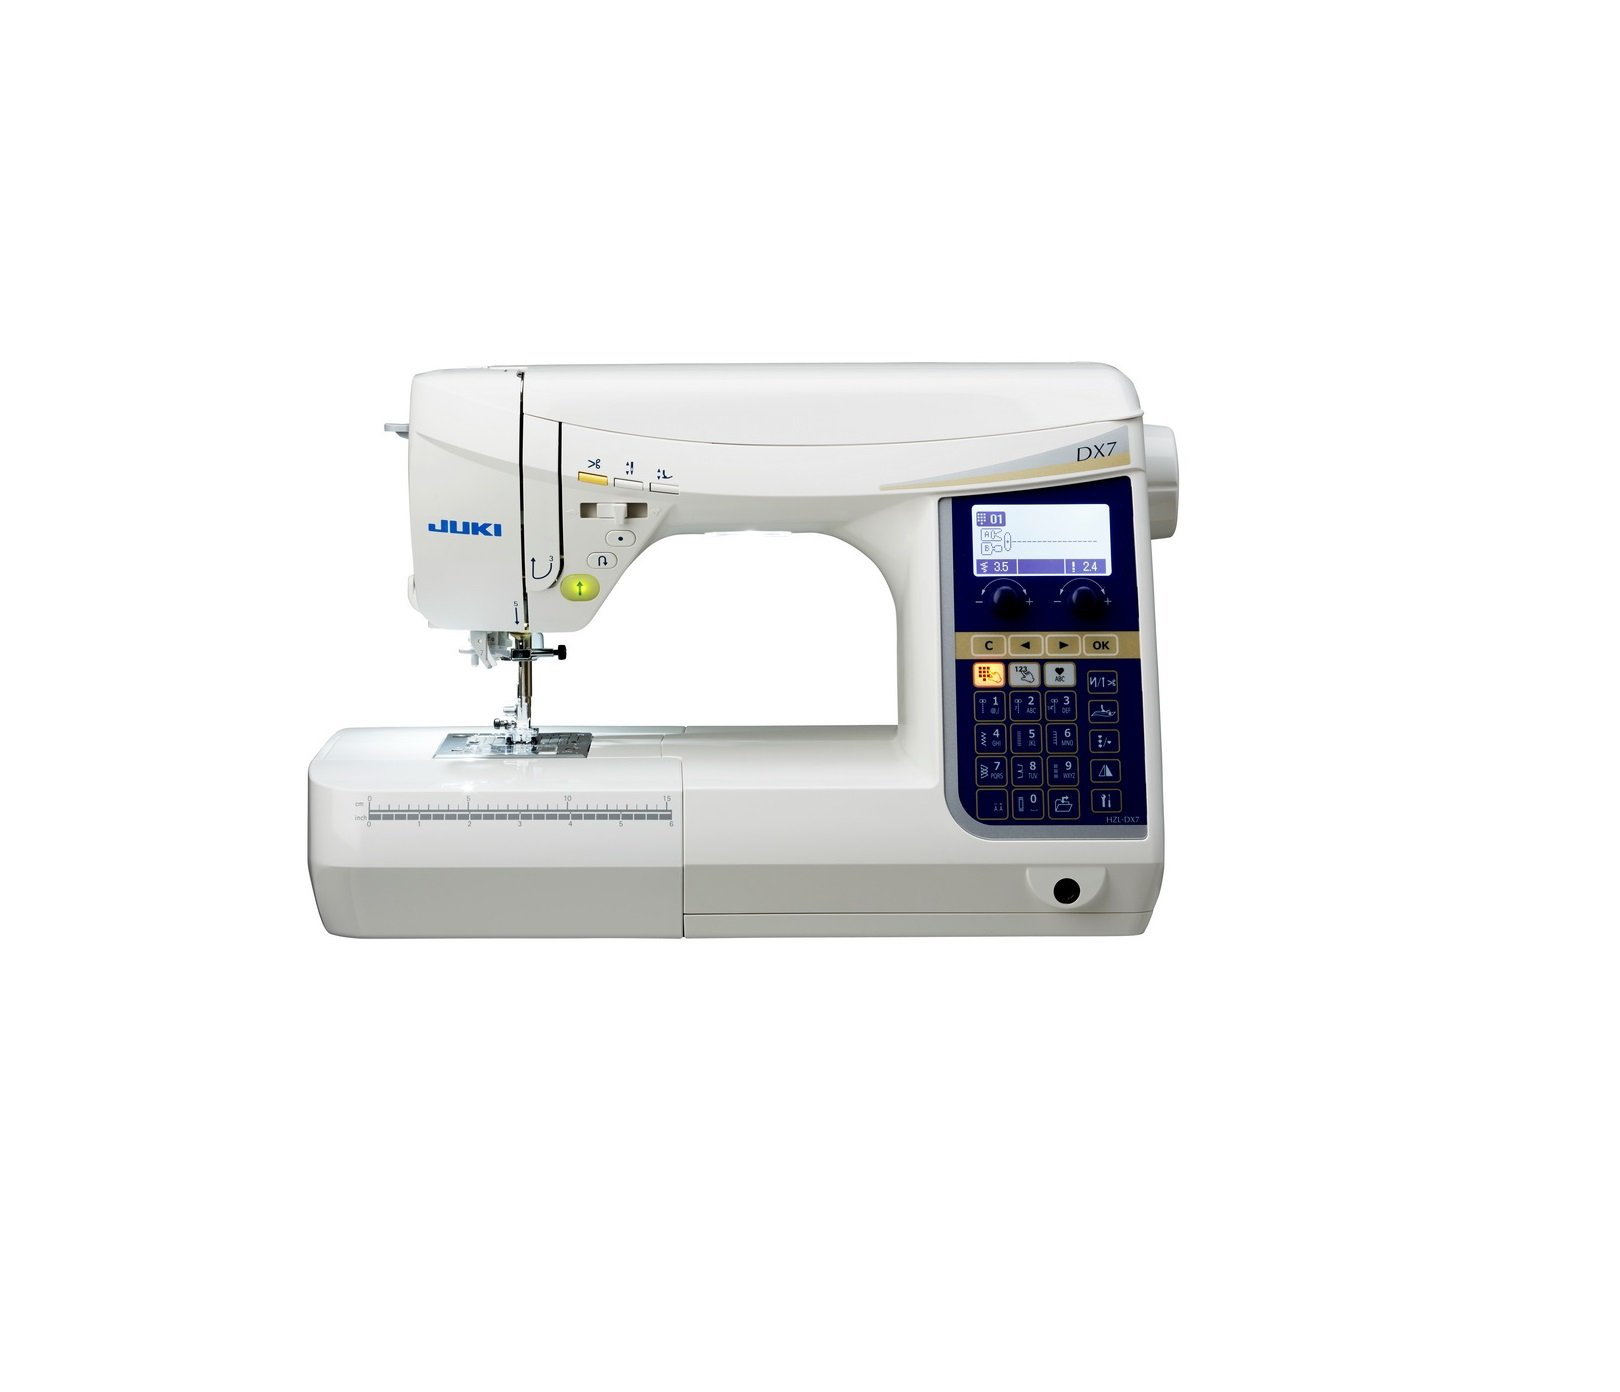 HZL-DX7 Juki Sewing and Quilting Machine. Professional, sleek, and simple to use!